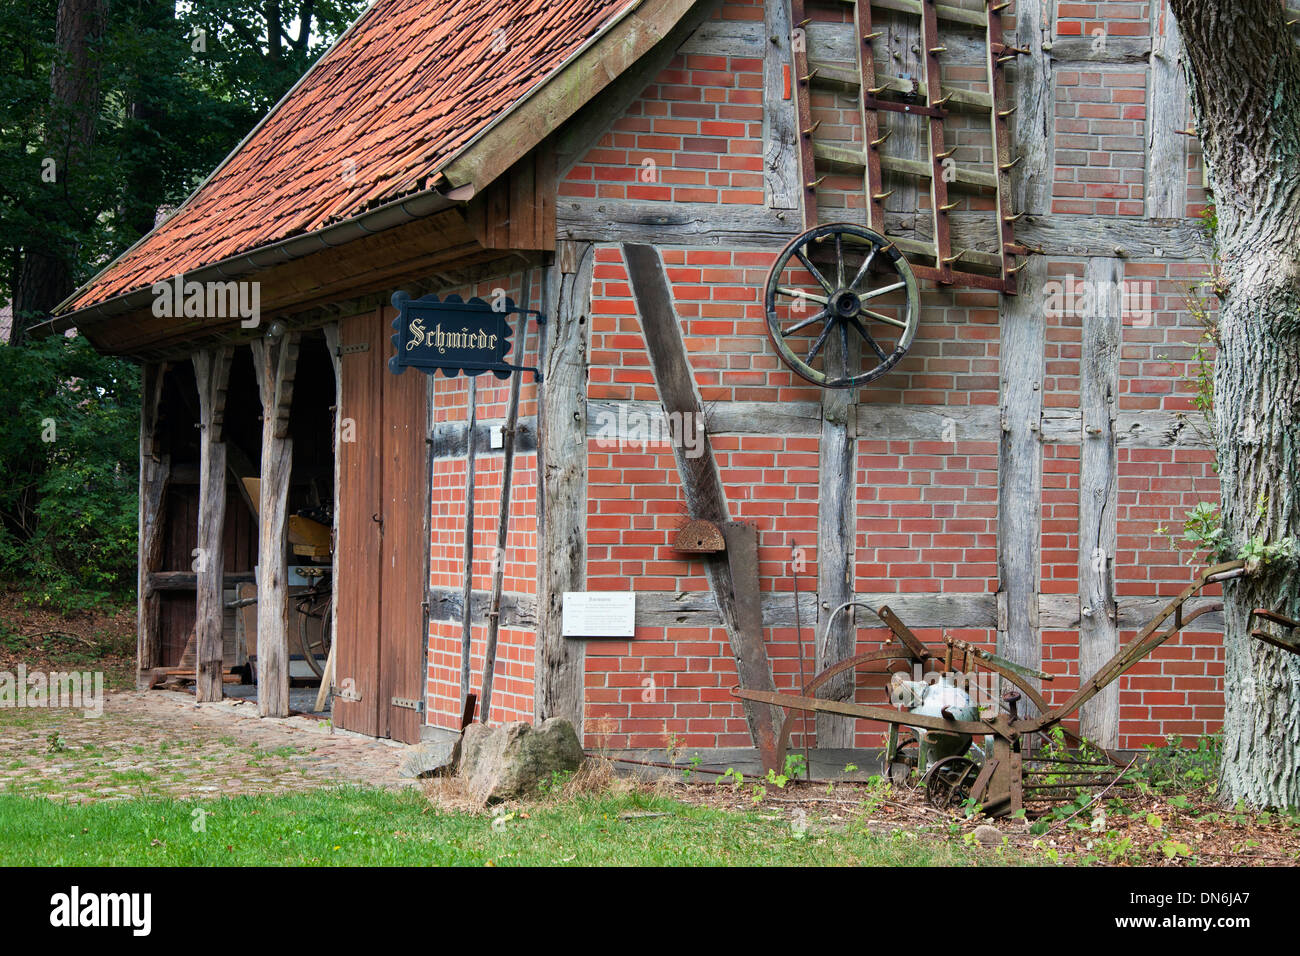 Old forge at the Heimathaus De Theeshof, open air museum at Schneverdingen, Lüneburg Heath / Lunenburg Heathland, Germany - Stock Image